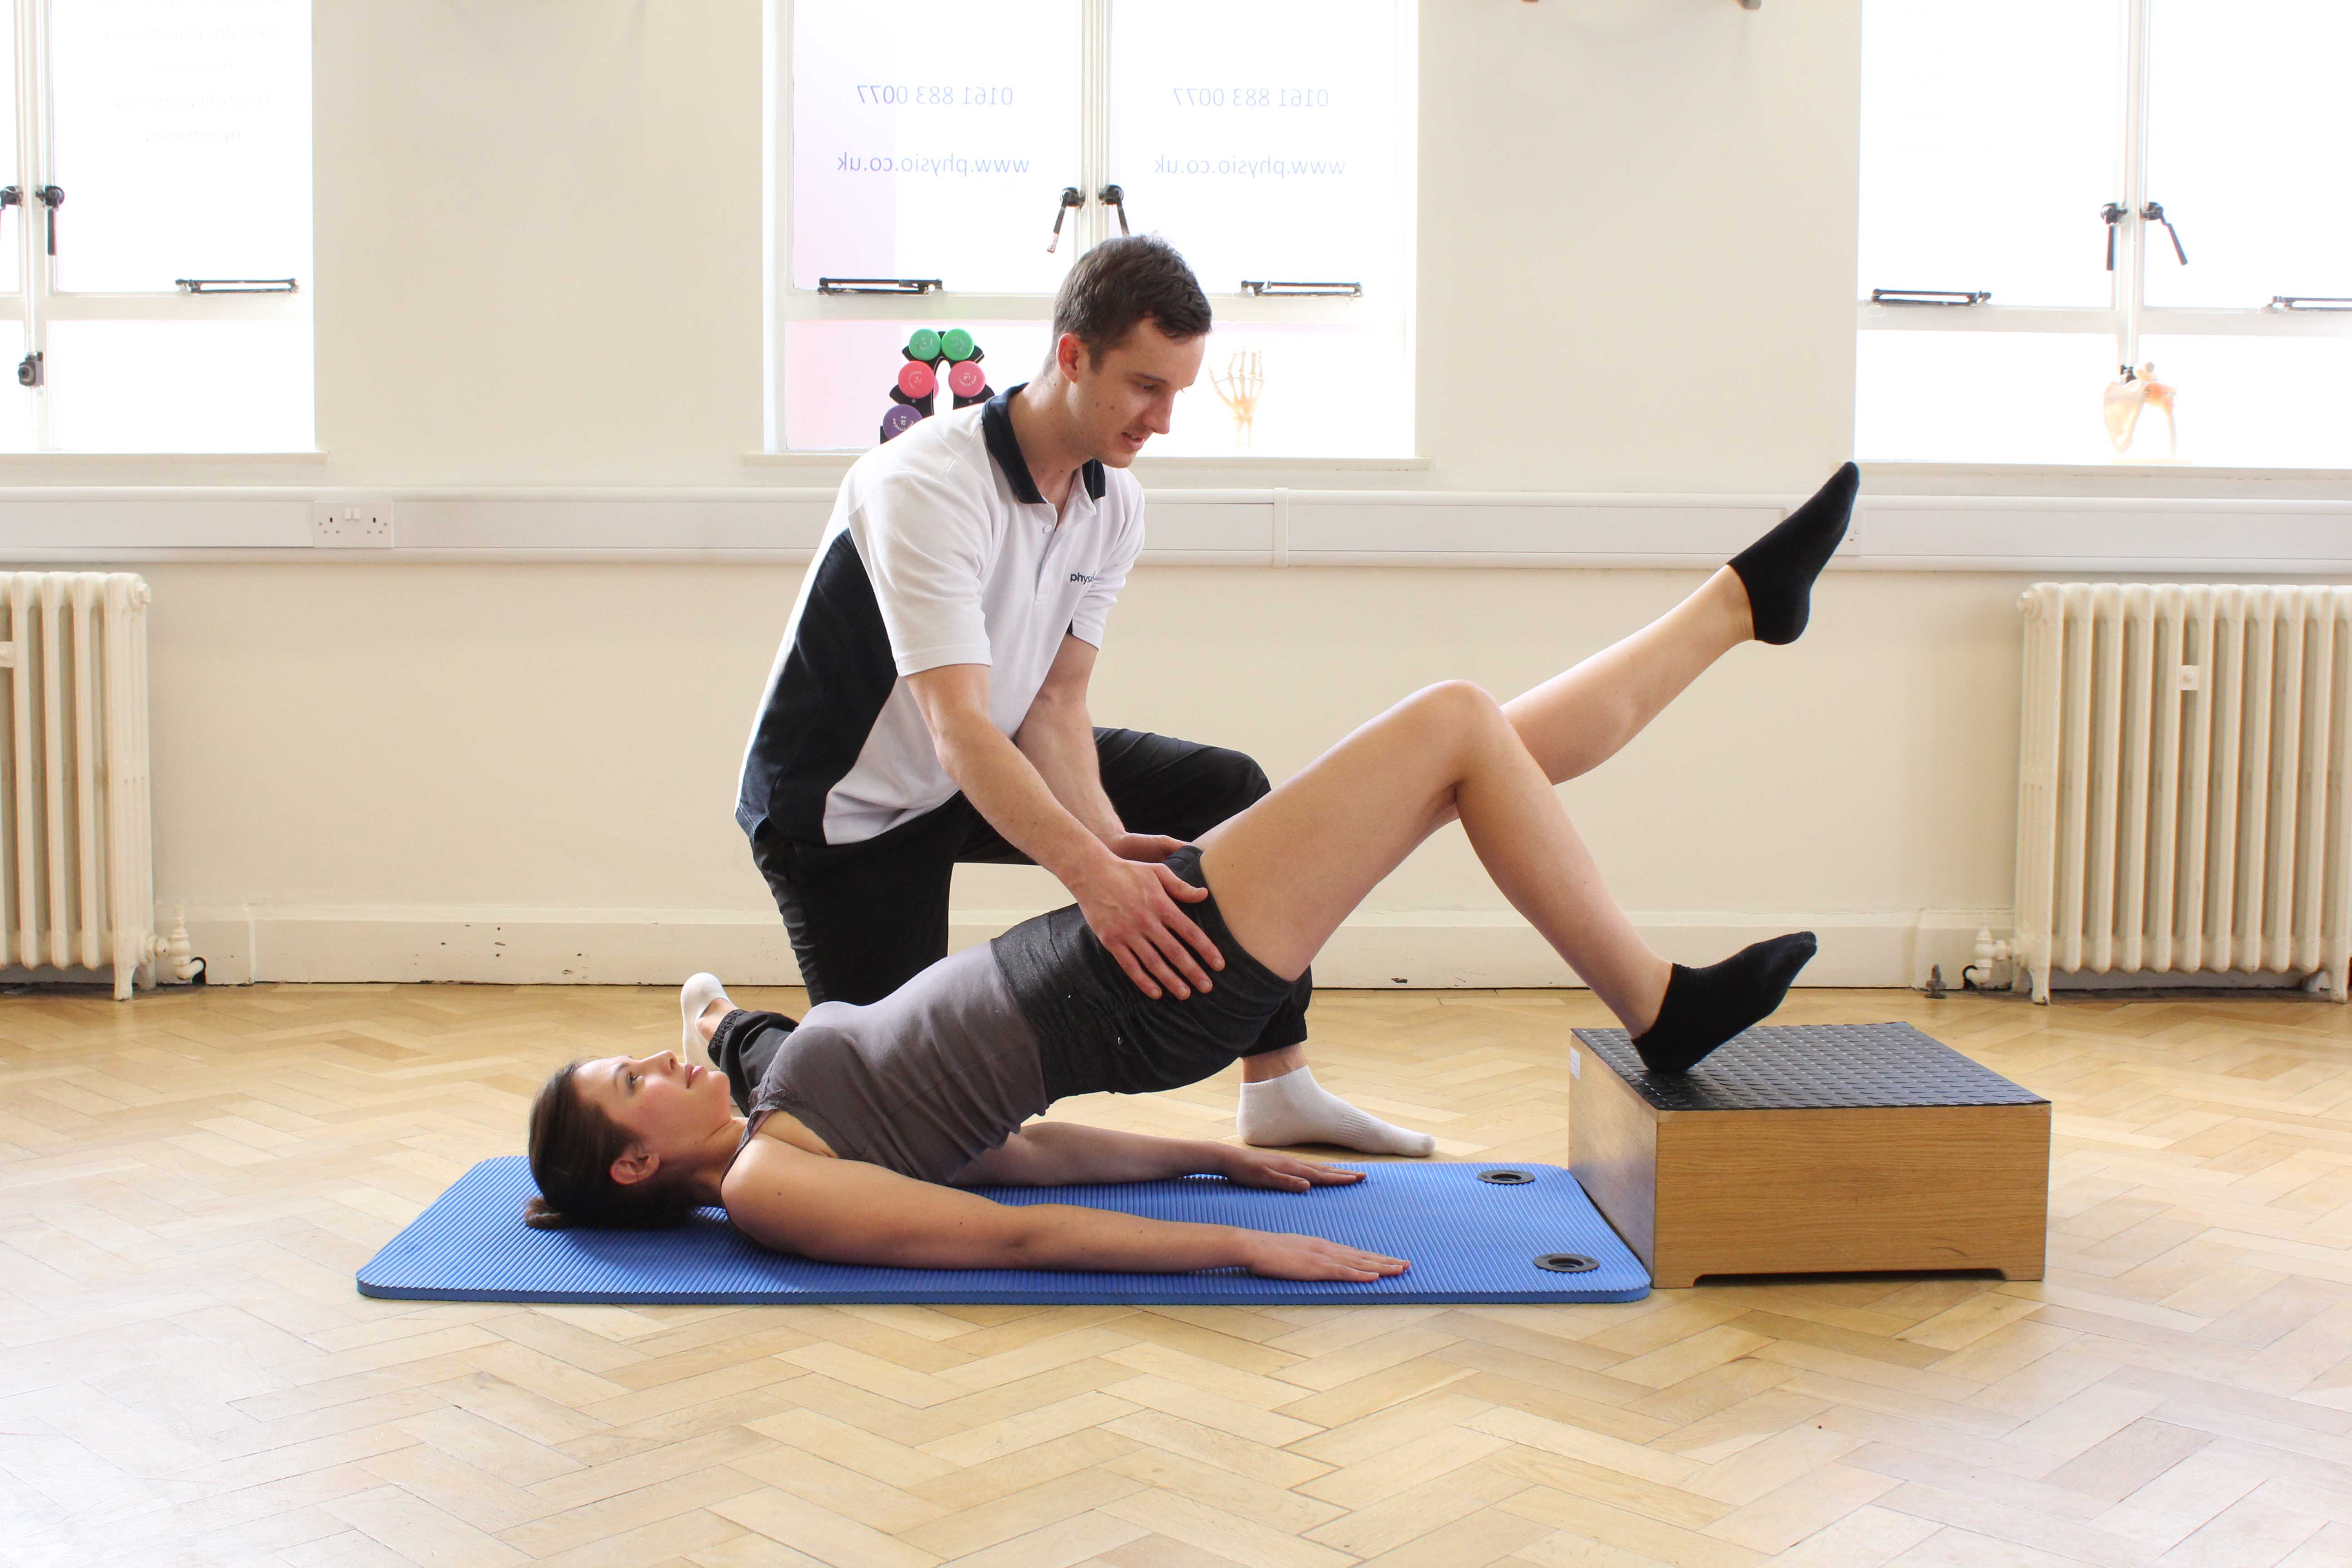 Specilaist physiotherapist supervising core stability exercises